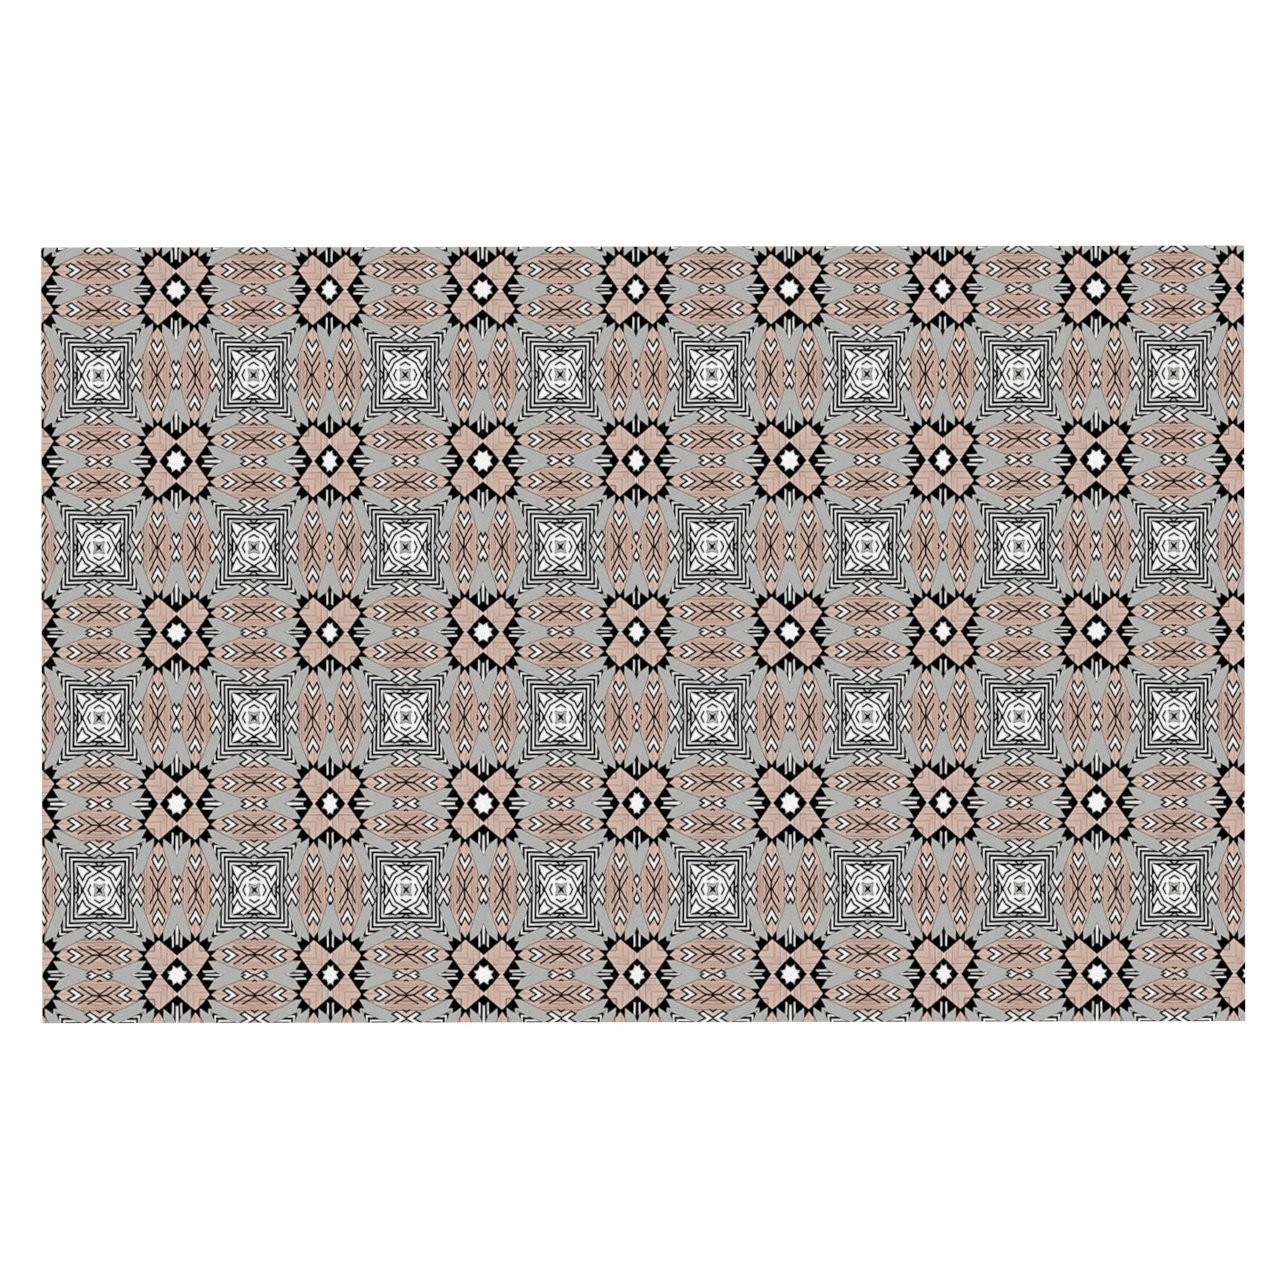 KESS InHouse Vasare Nar African Nomad  Brown Pattern Dog Place Mat, 13  x 18